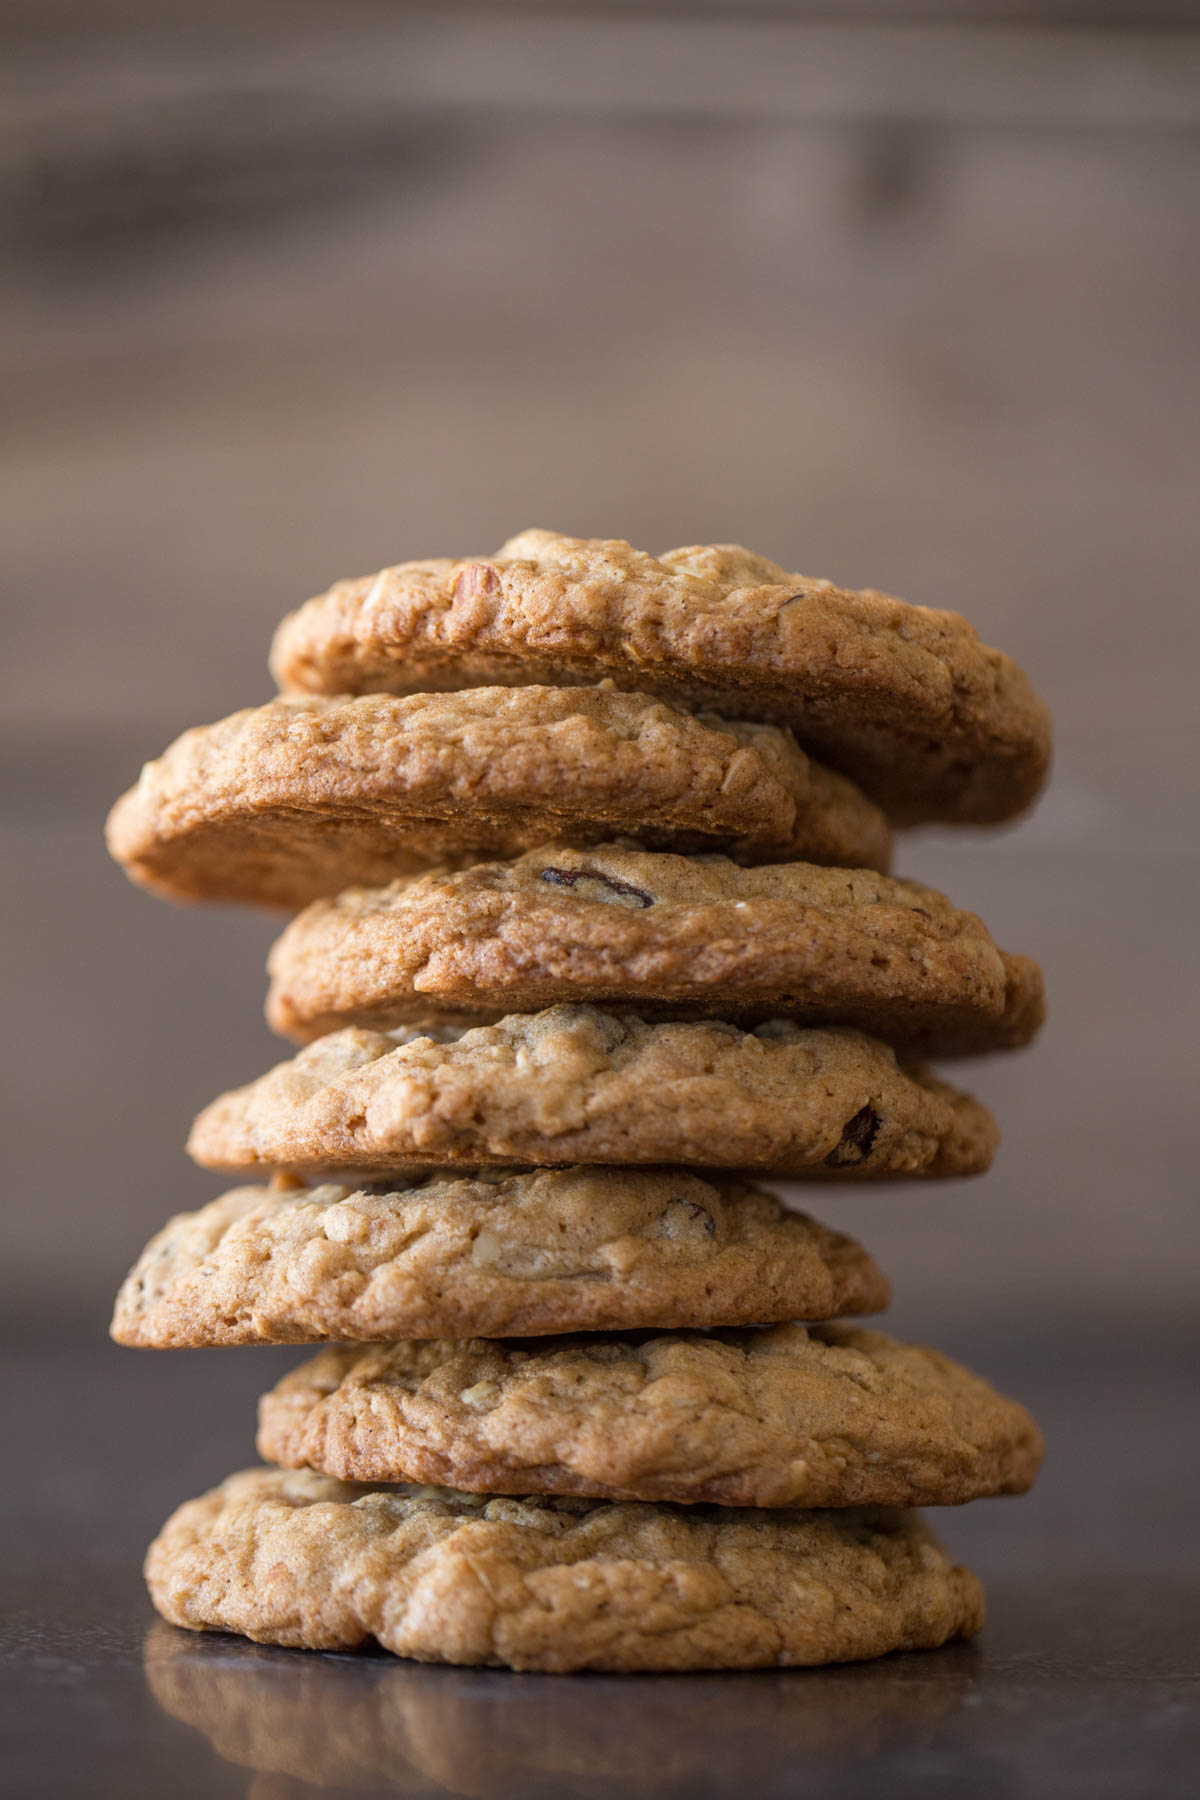 These cookies have the most amazing chewy texture, the flavors are deep and warm, and they are big and soft with a crisp edge like cookies from your favorite bakery!